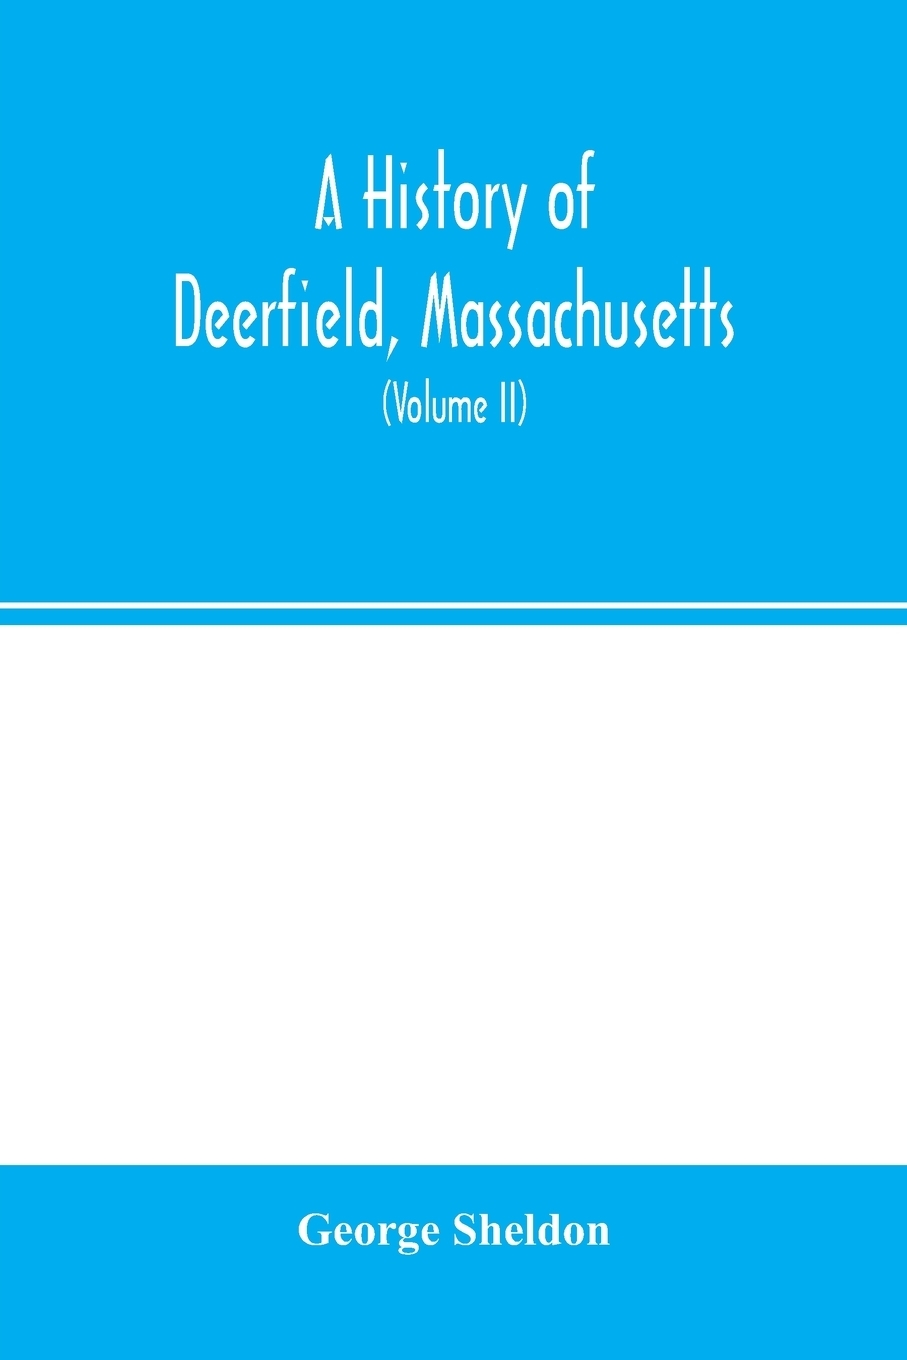 George Sheldon. A history of Deerfield, Massachusetts. the times when and the people by whom it was settled, unsettled and resettled: with a special study of the Indian wars in the Connecticut Valley. With genealogies (Volume II)